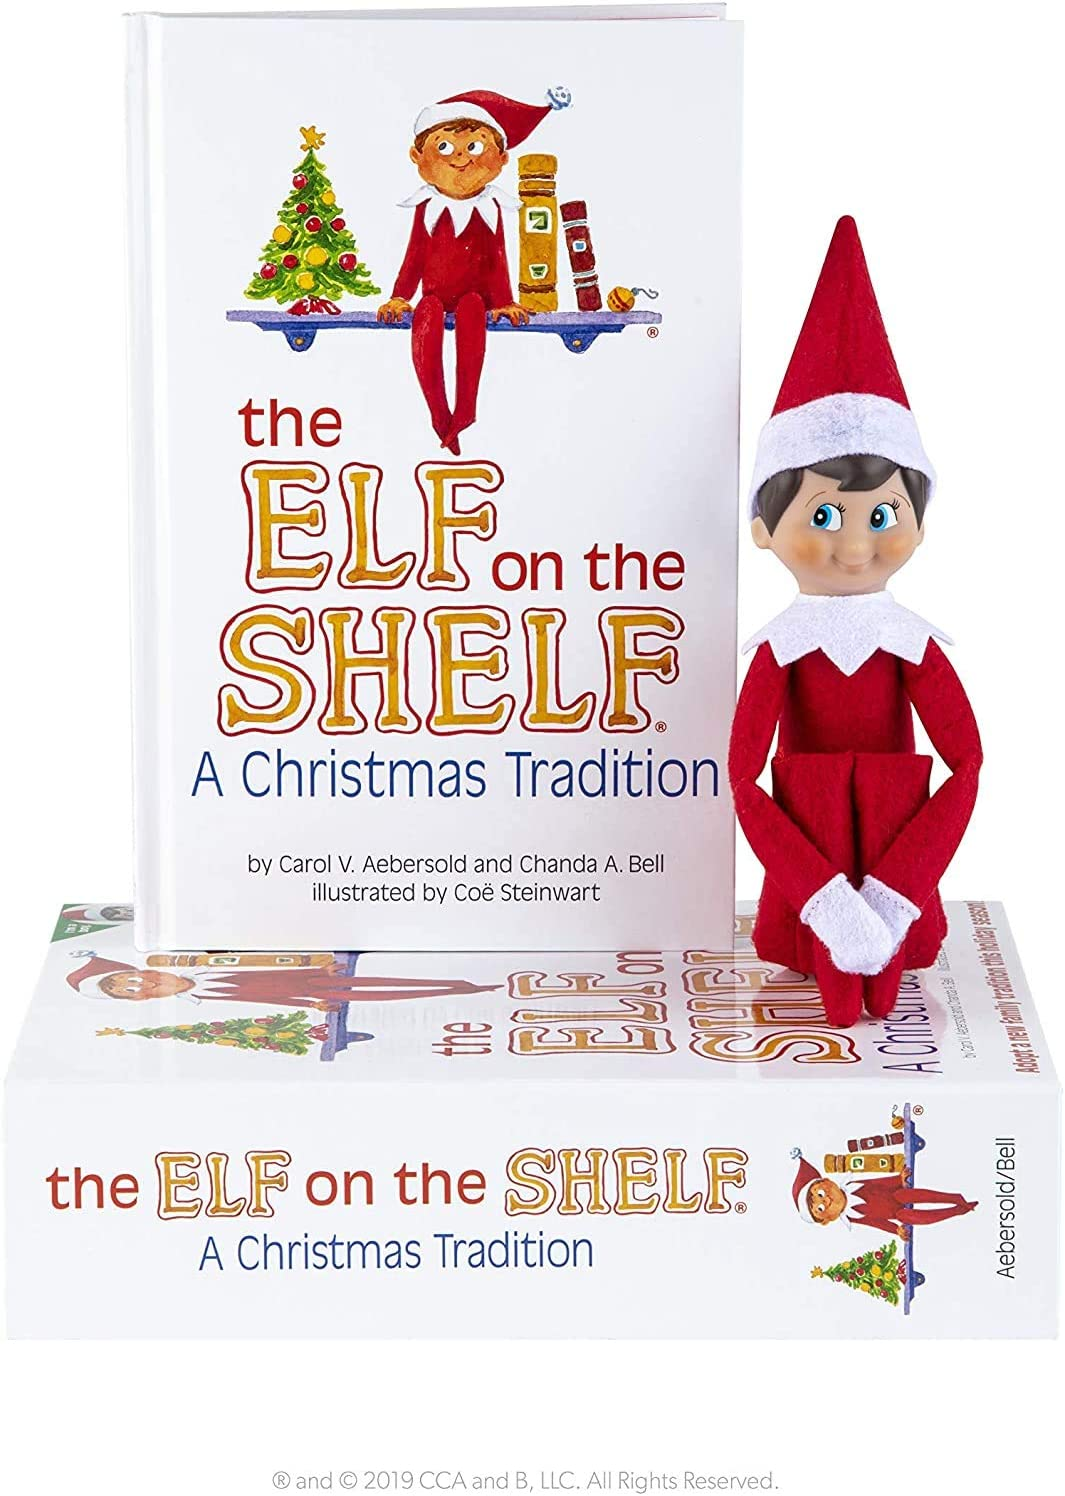 Elf on the Shelf : A Christmas Tradition Blue-Eyed Boy Light Tone Scout Elf! Elf and book included.